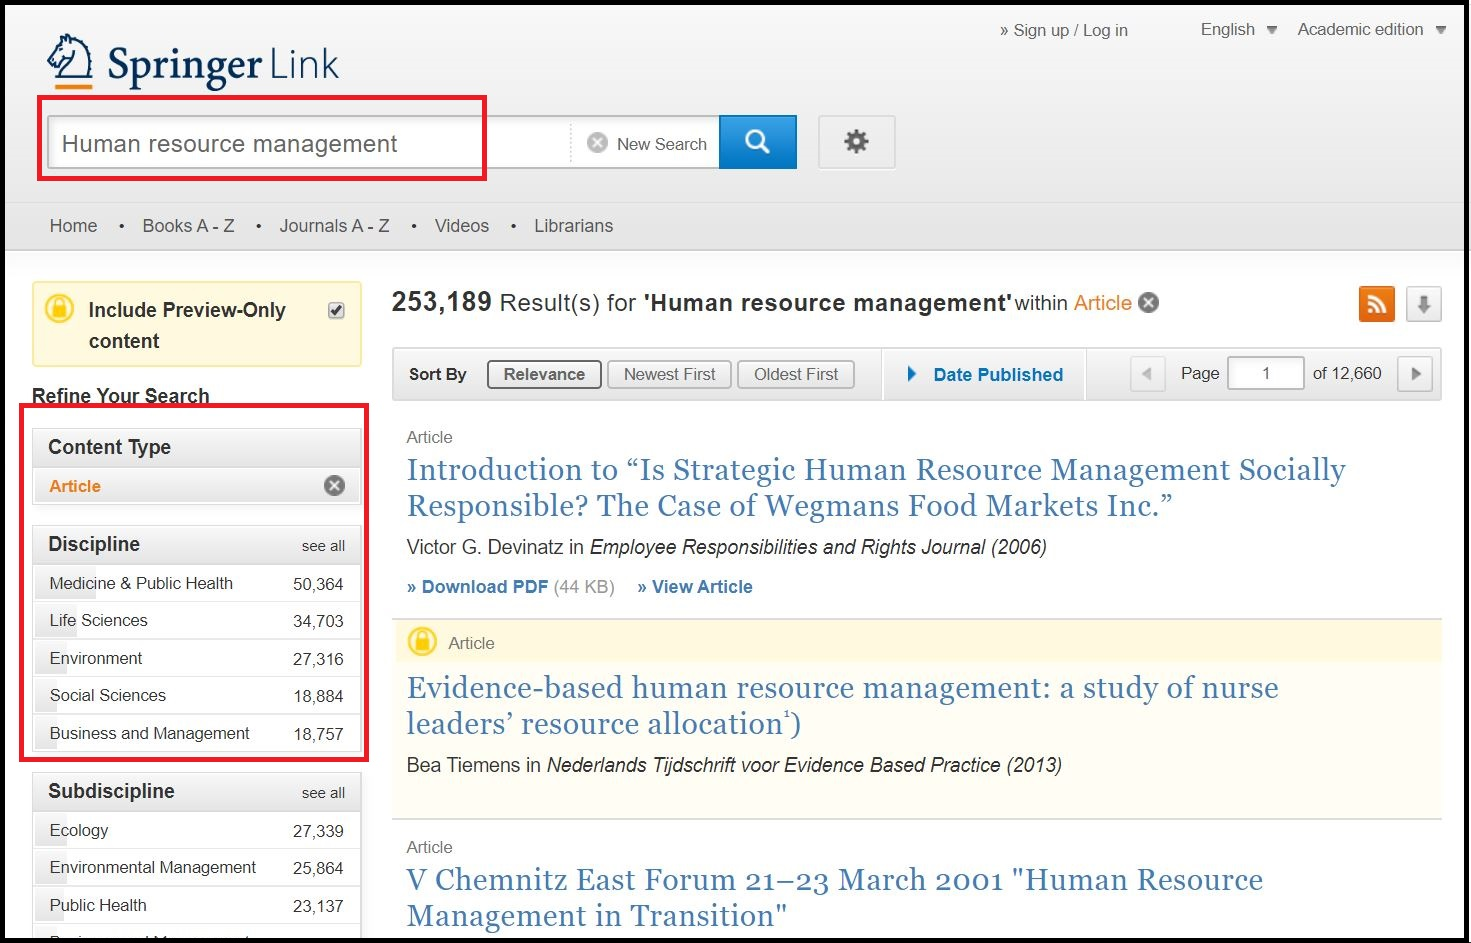 Open Springer Link then Search for Required Subject and Click on Required Content Type and Click on Required Discipline